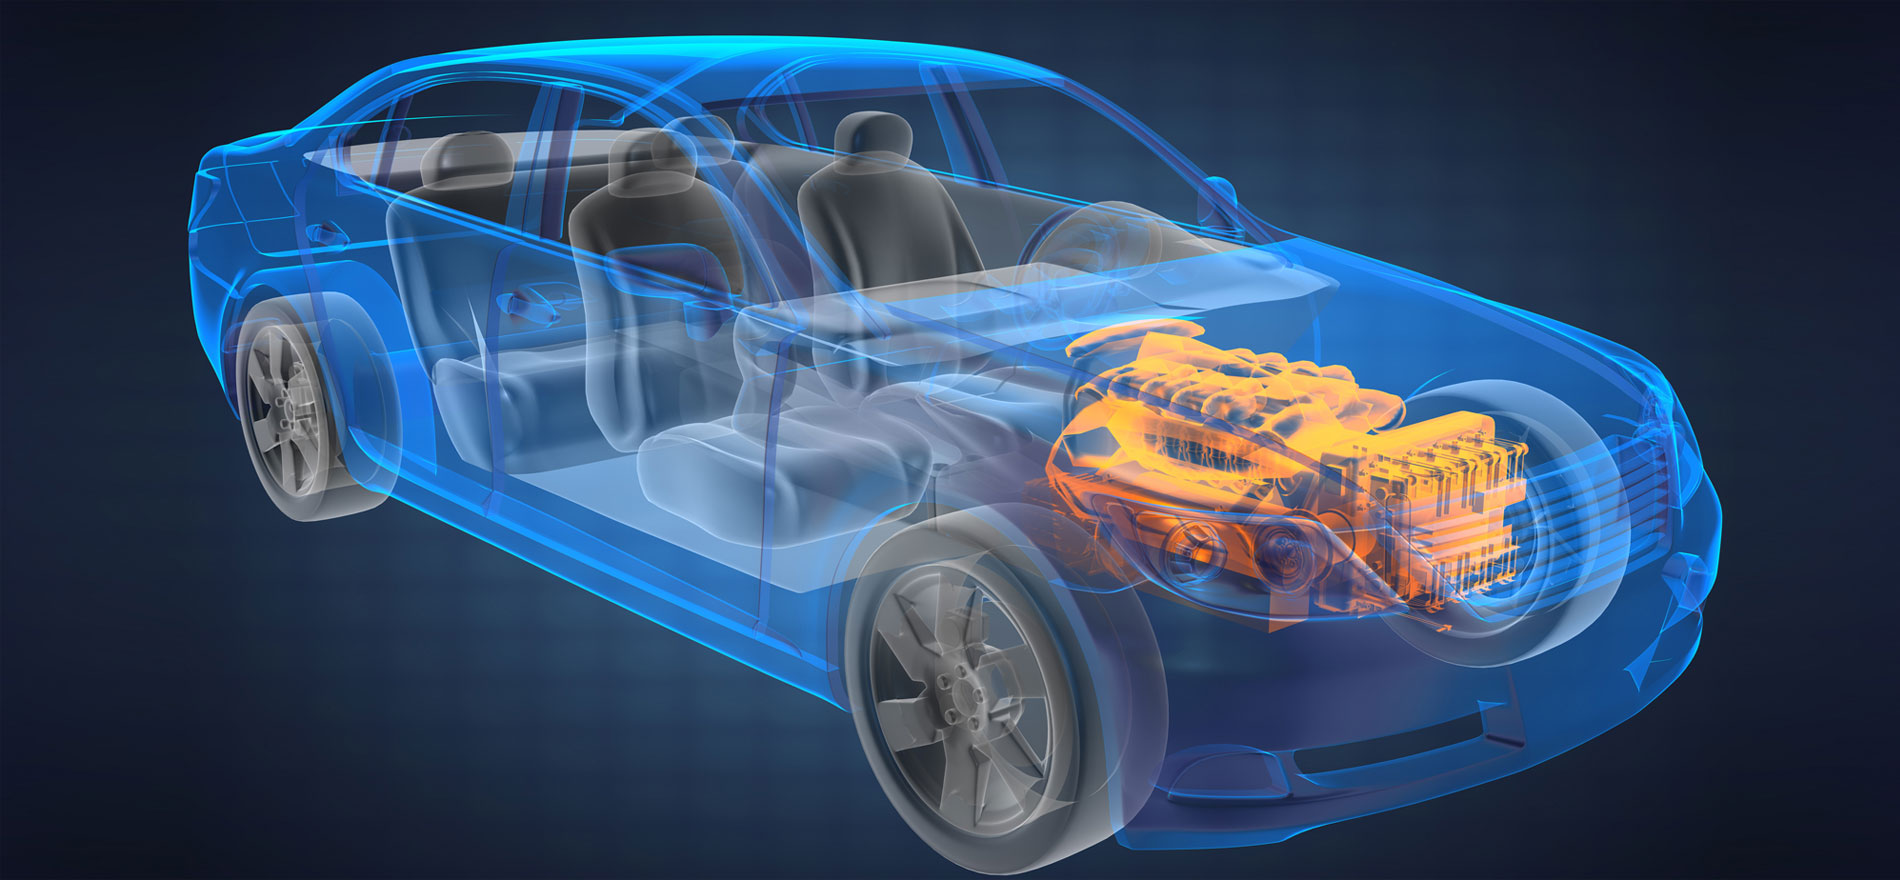 Automotive_BannerImage